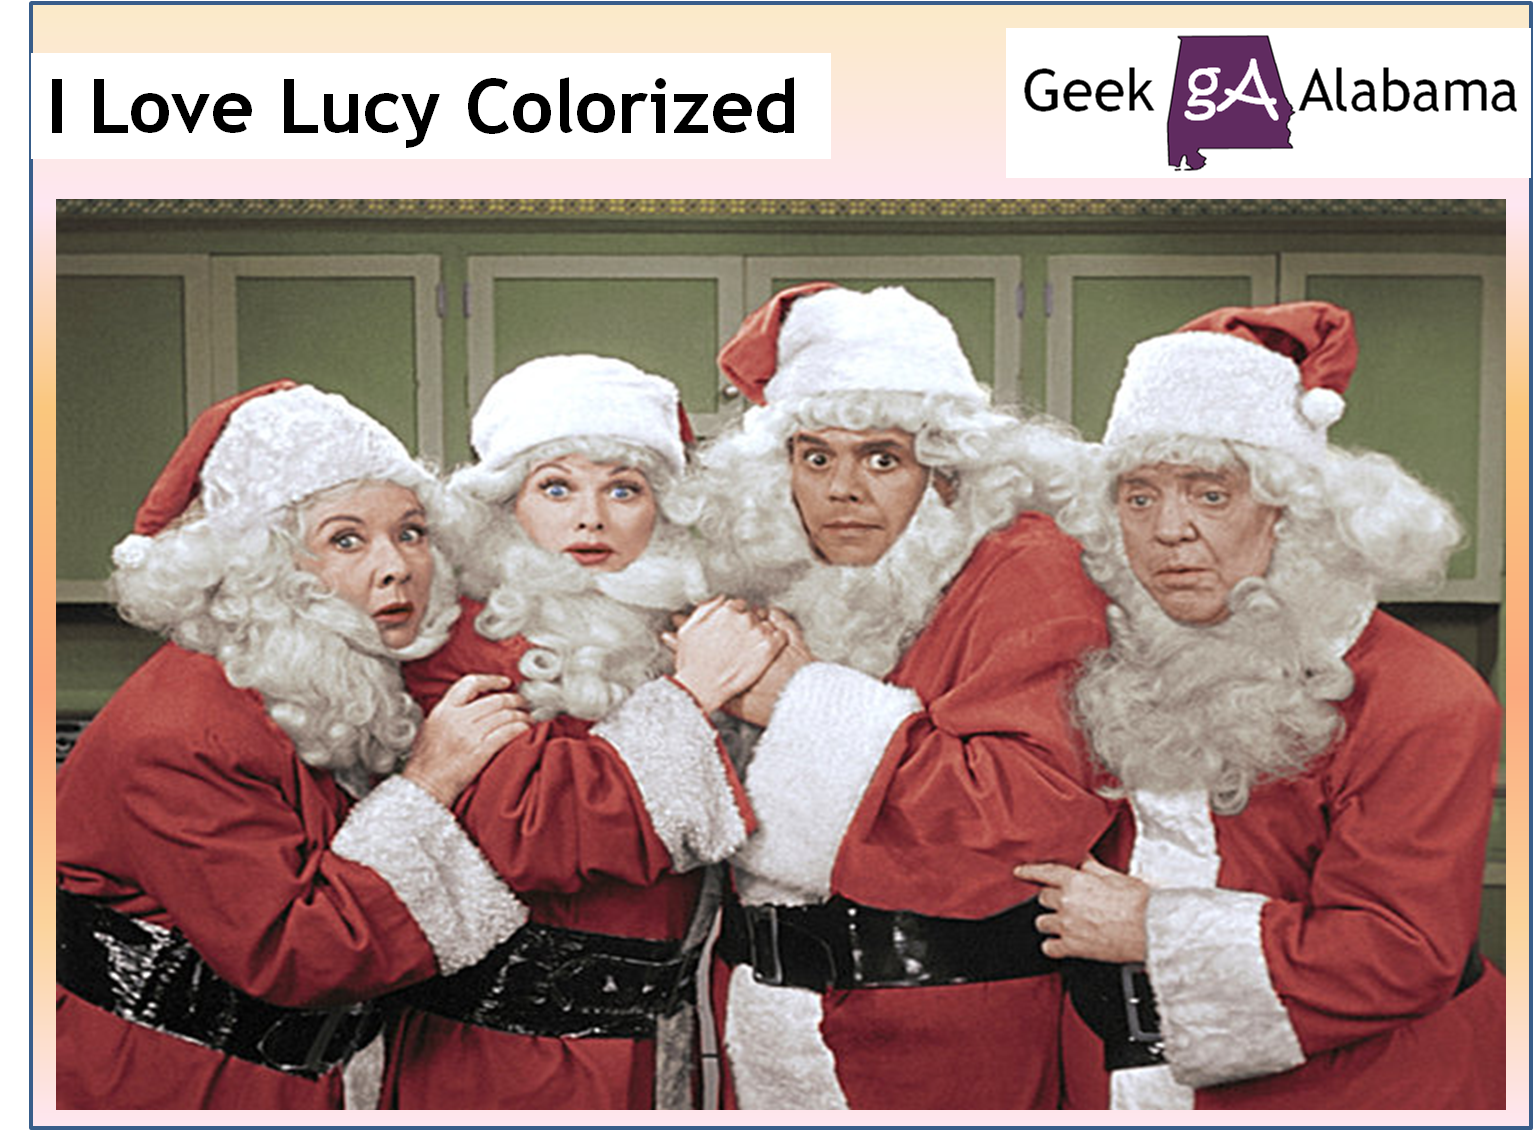 Watch The I Love Lucy Colorized Christmas Special – Geek Alabama